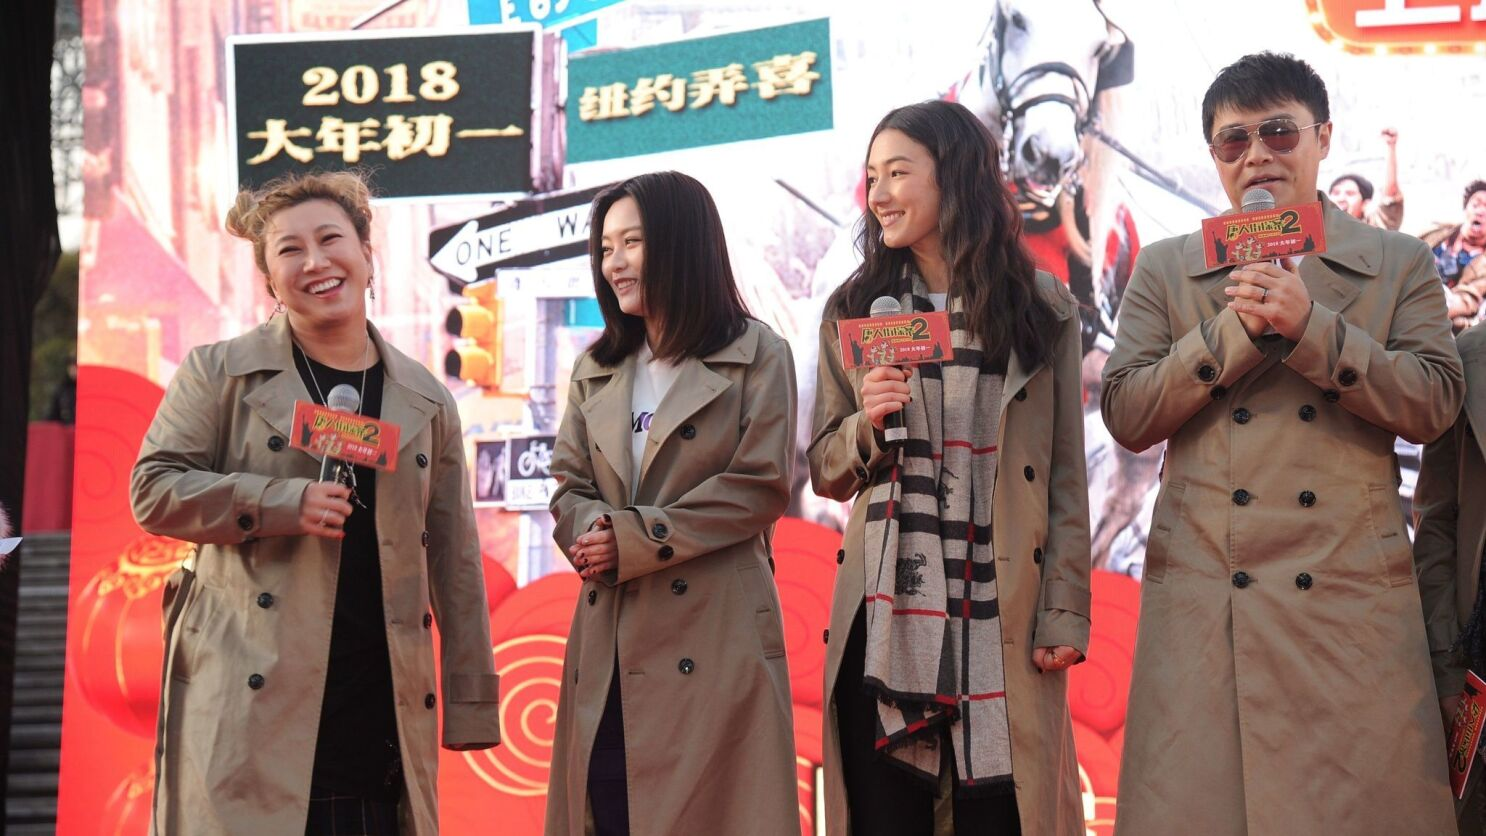 China S Box Office Surges With Detective Chinatown 2 And Other Homegrown Hits During Spring Festival Los Angeles Times